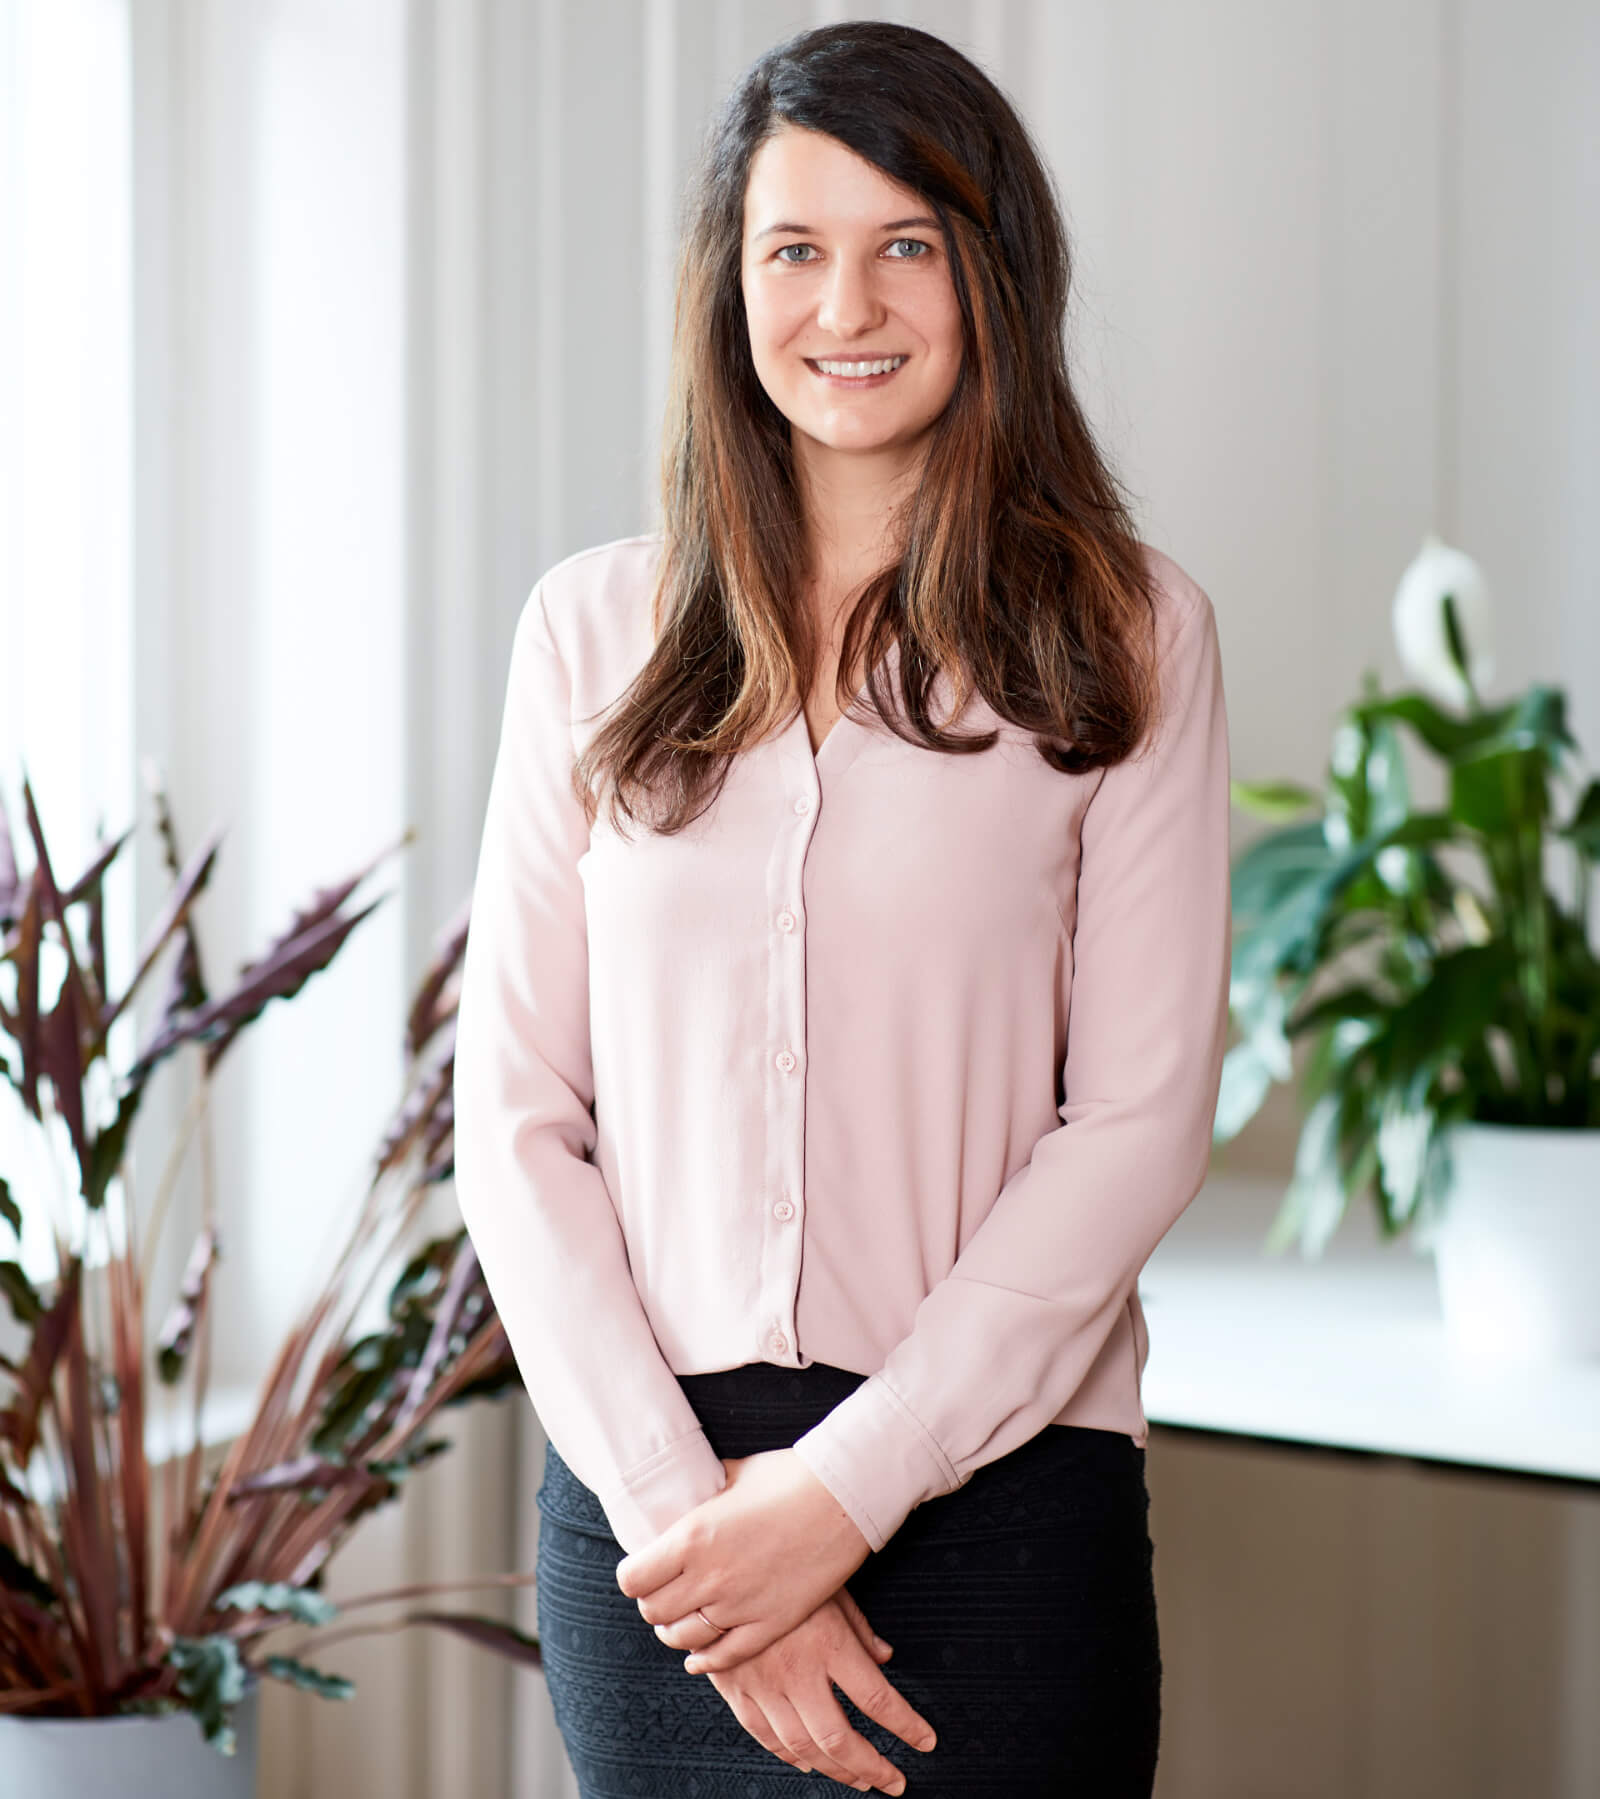 bettina-enser-leitung-marketing-team-eturnity